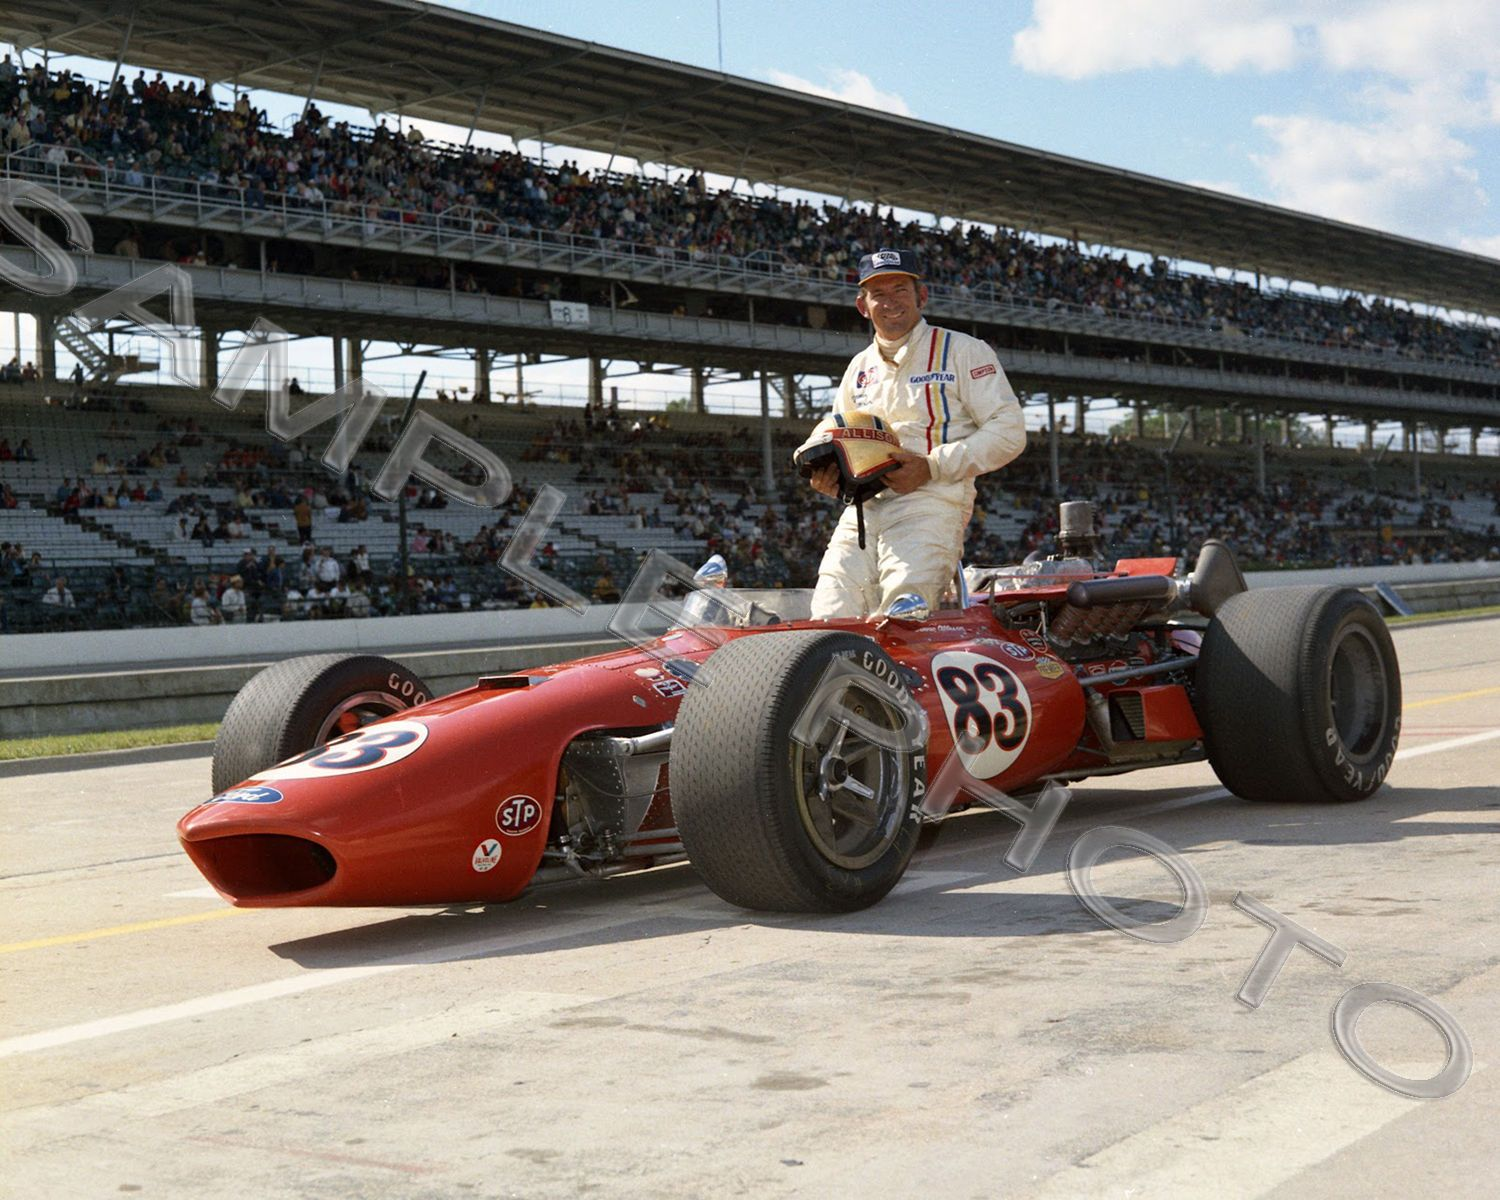 3 95 donnie allison 1970 indy 500 auto racing 8x10 photo ebay collectibles